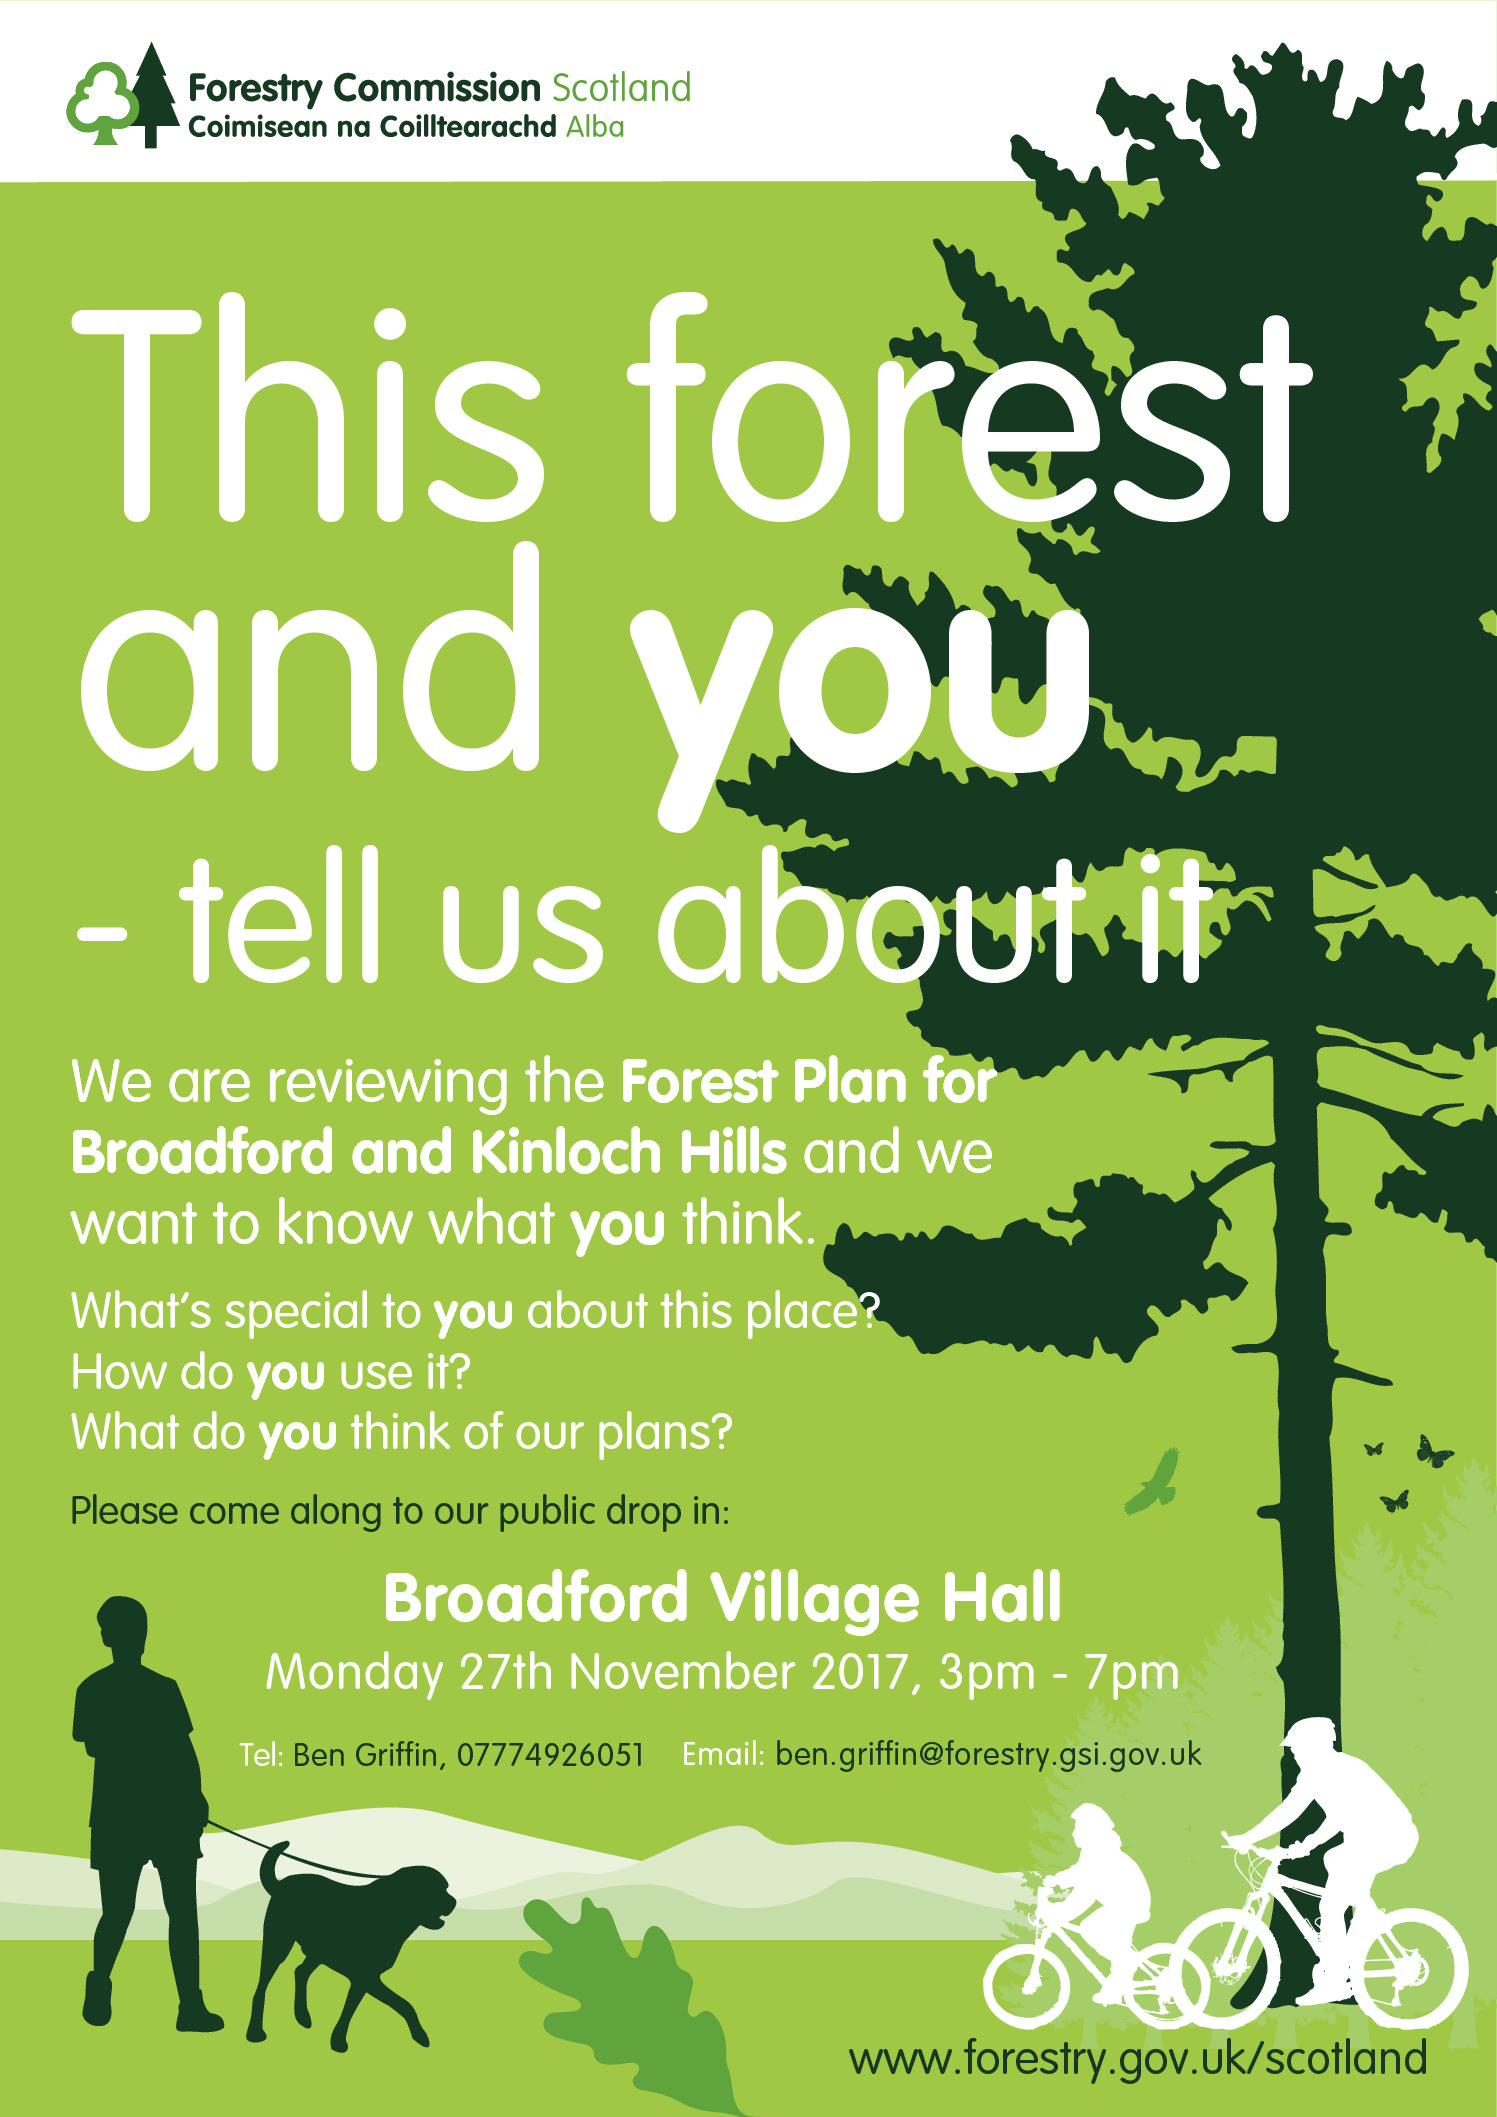 Review of Forest Plan for Broadford and Kinloch Hills